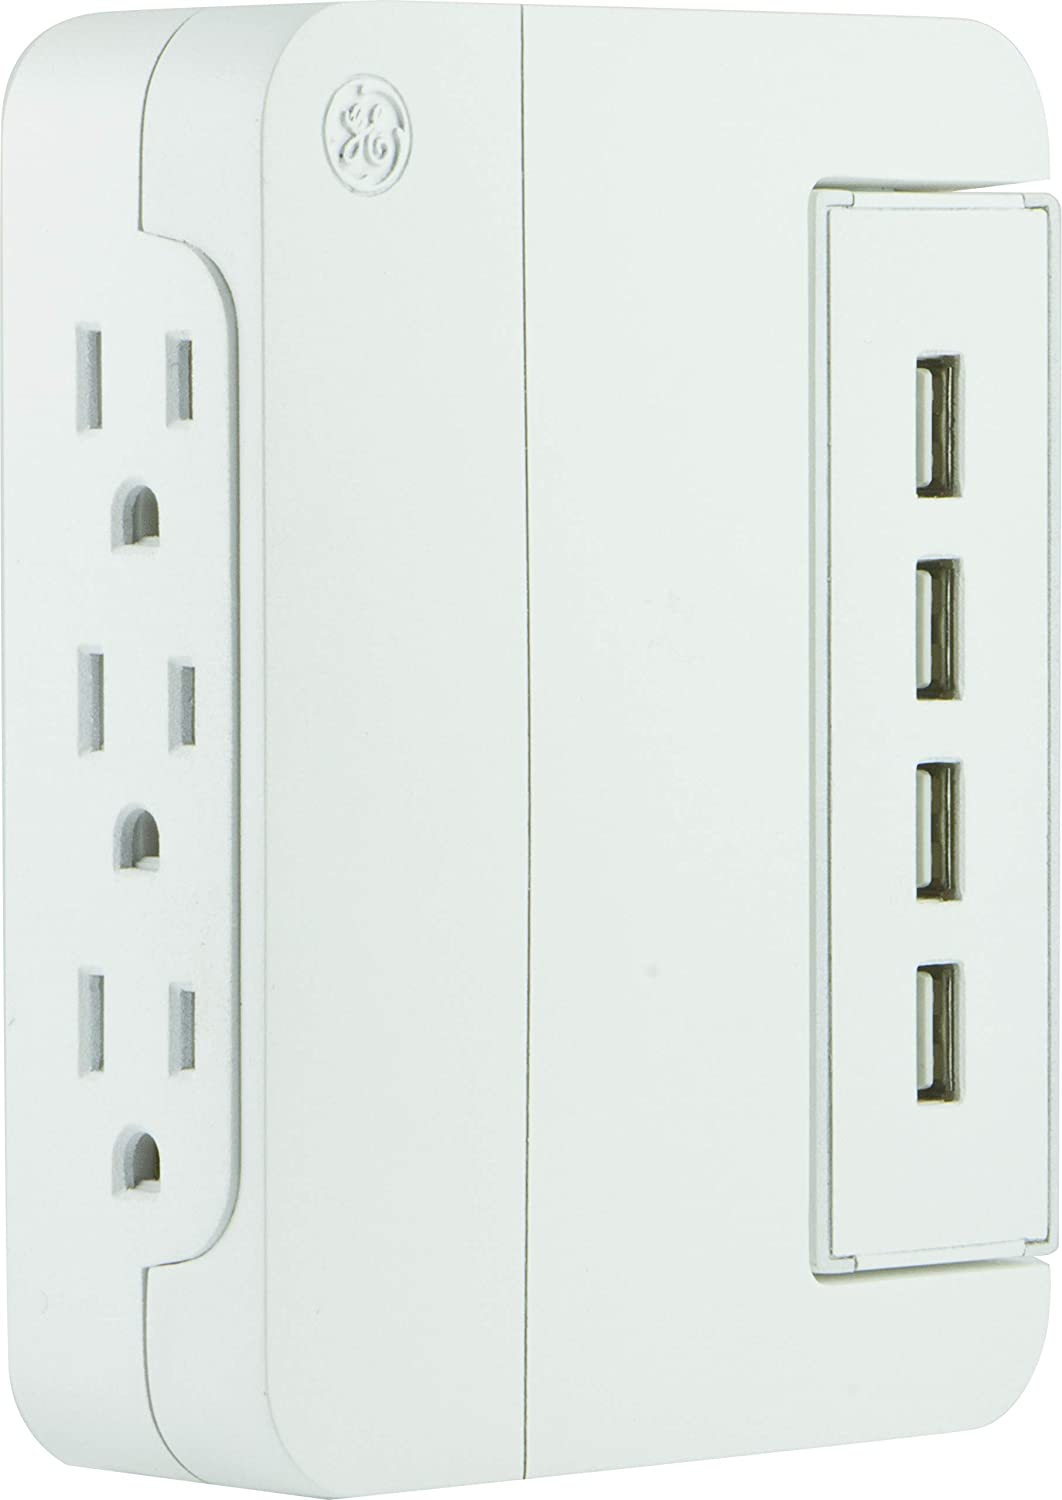 GE Ultra Pro Charging Station, 4 Adapter, 3 Wall Tap, Side Outlets, Swivel Access, 4.8A USB, White 37061